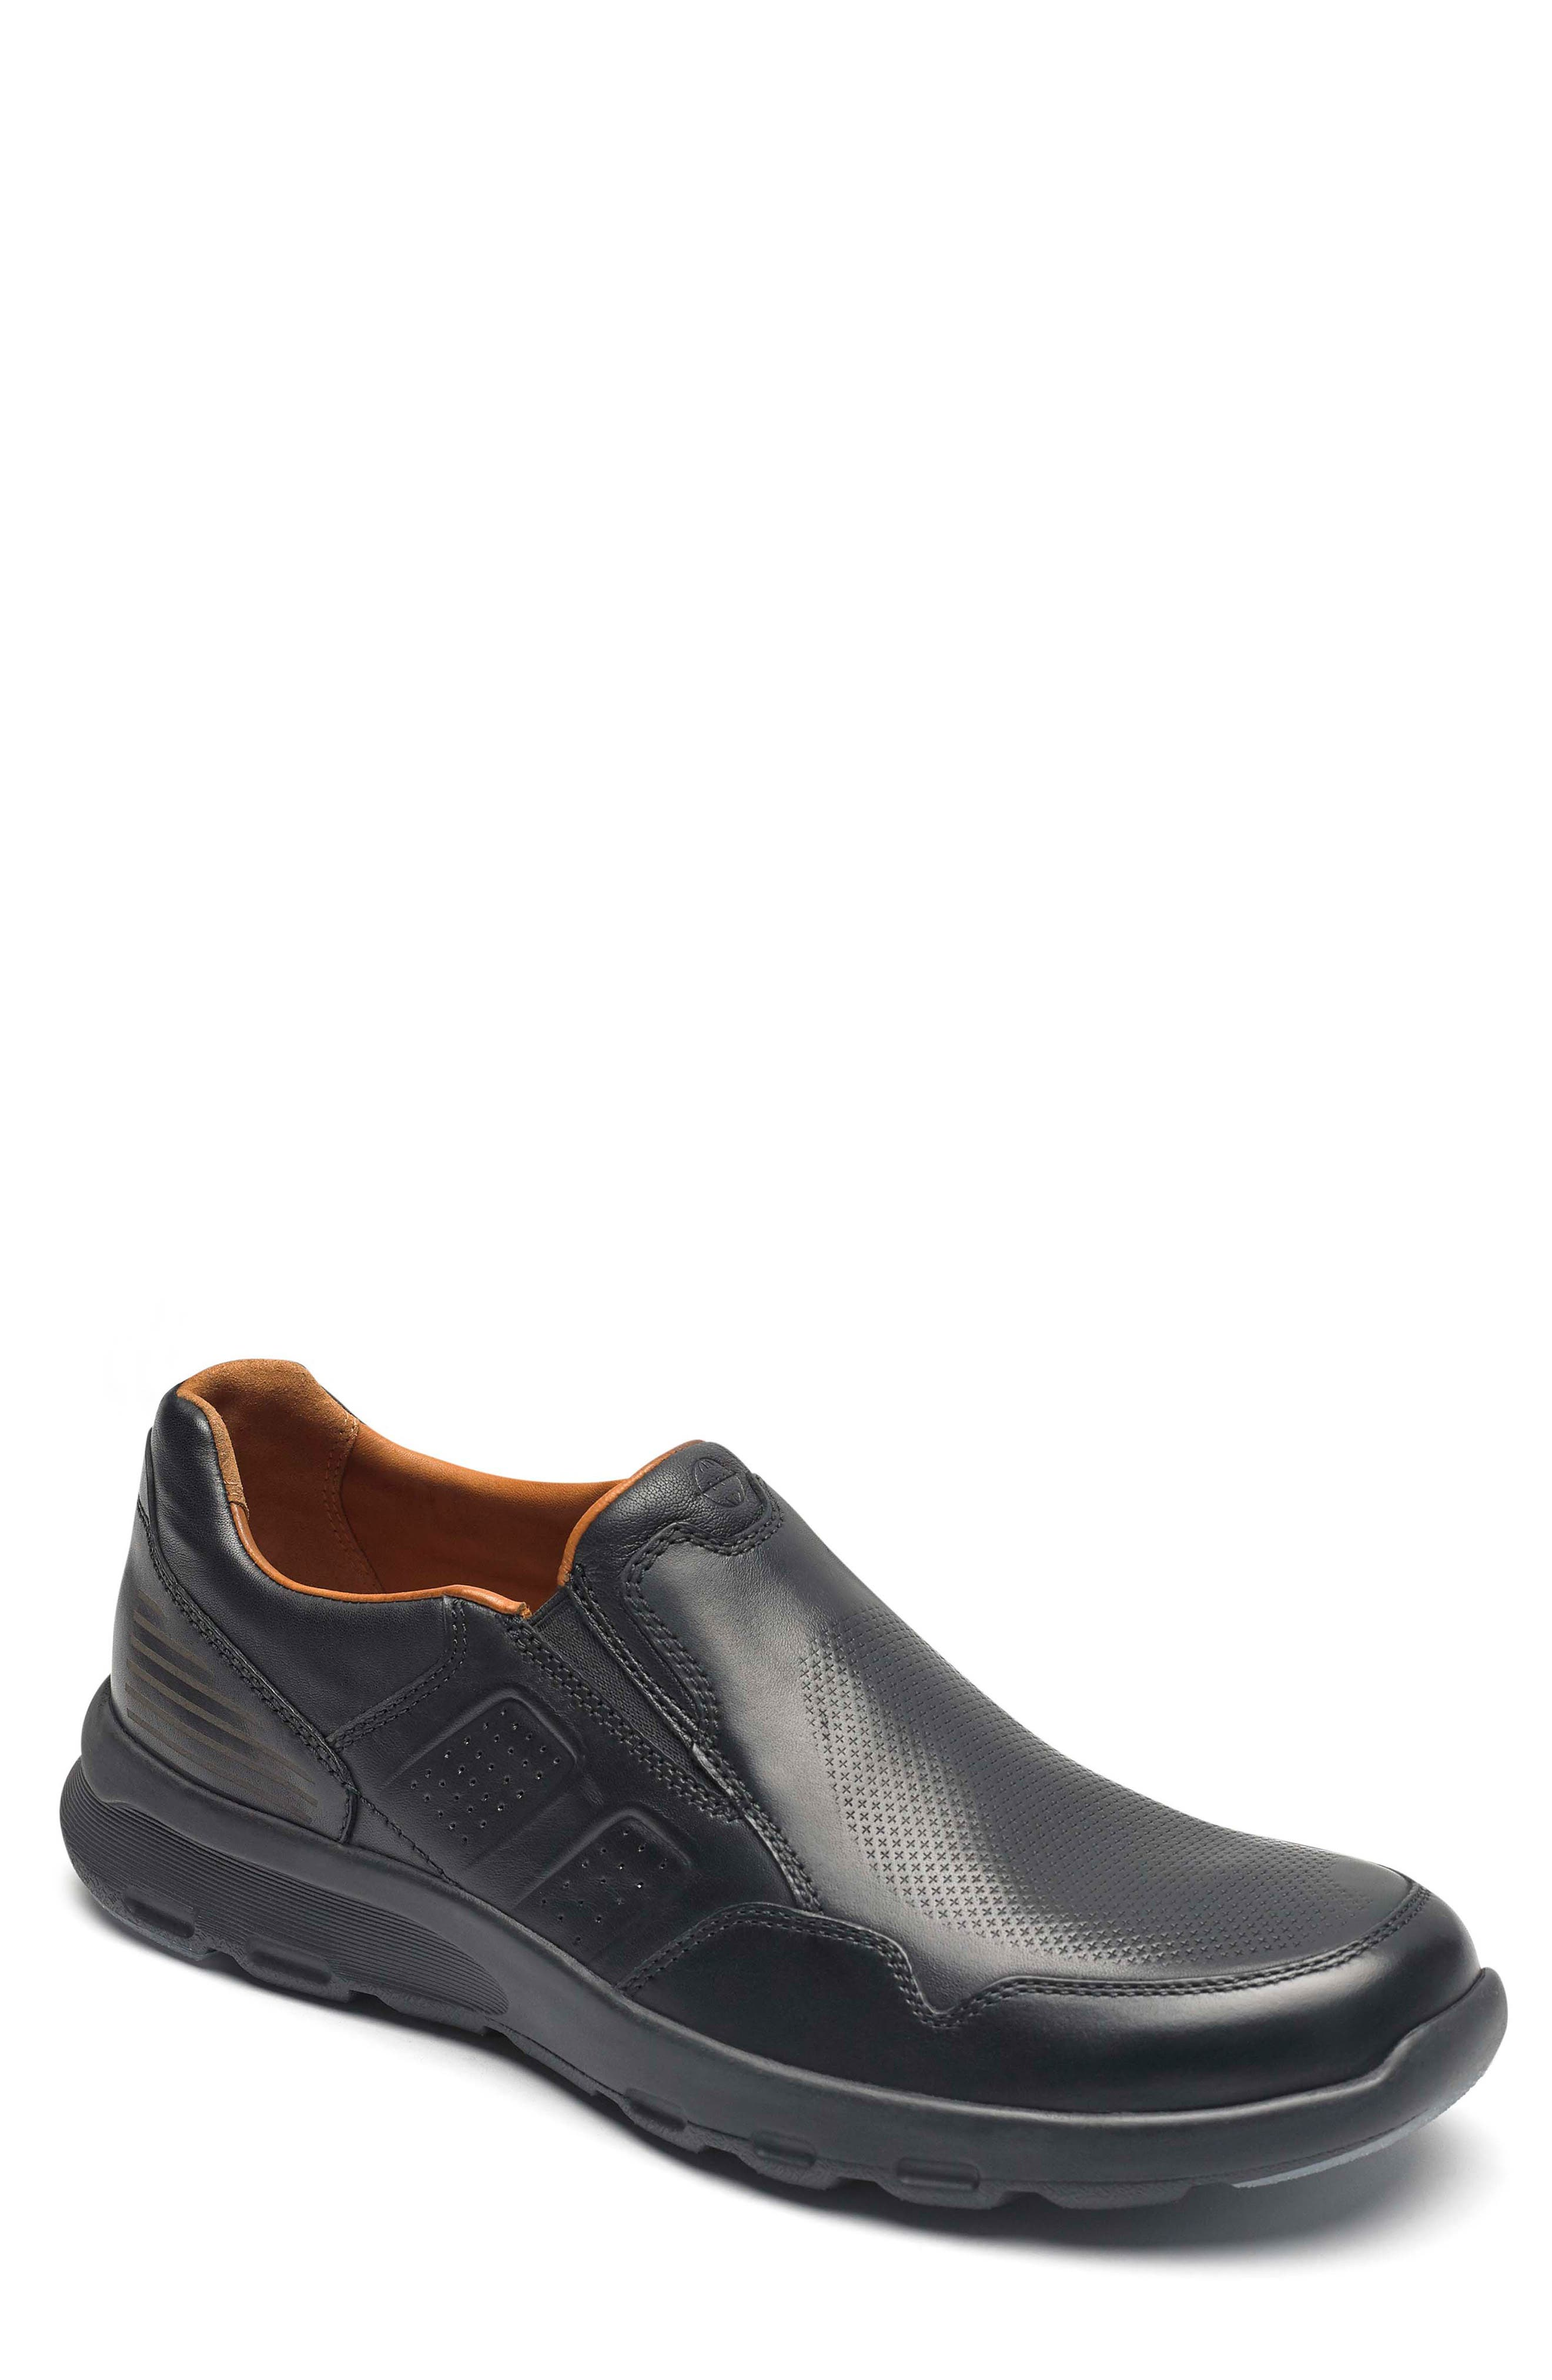 Let's Walk<sup>®</sup> Venetian Loafer,                             Main thumbnail 1, color,                             BLACK LEATHER